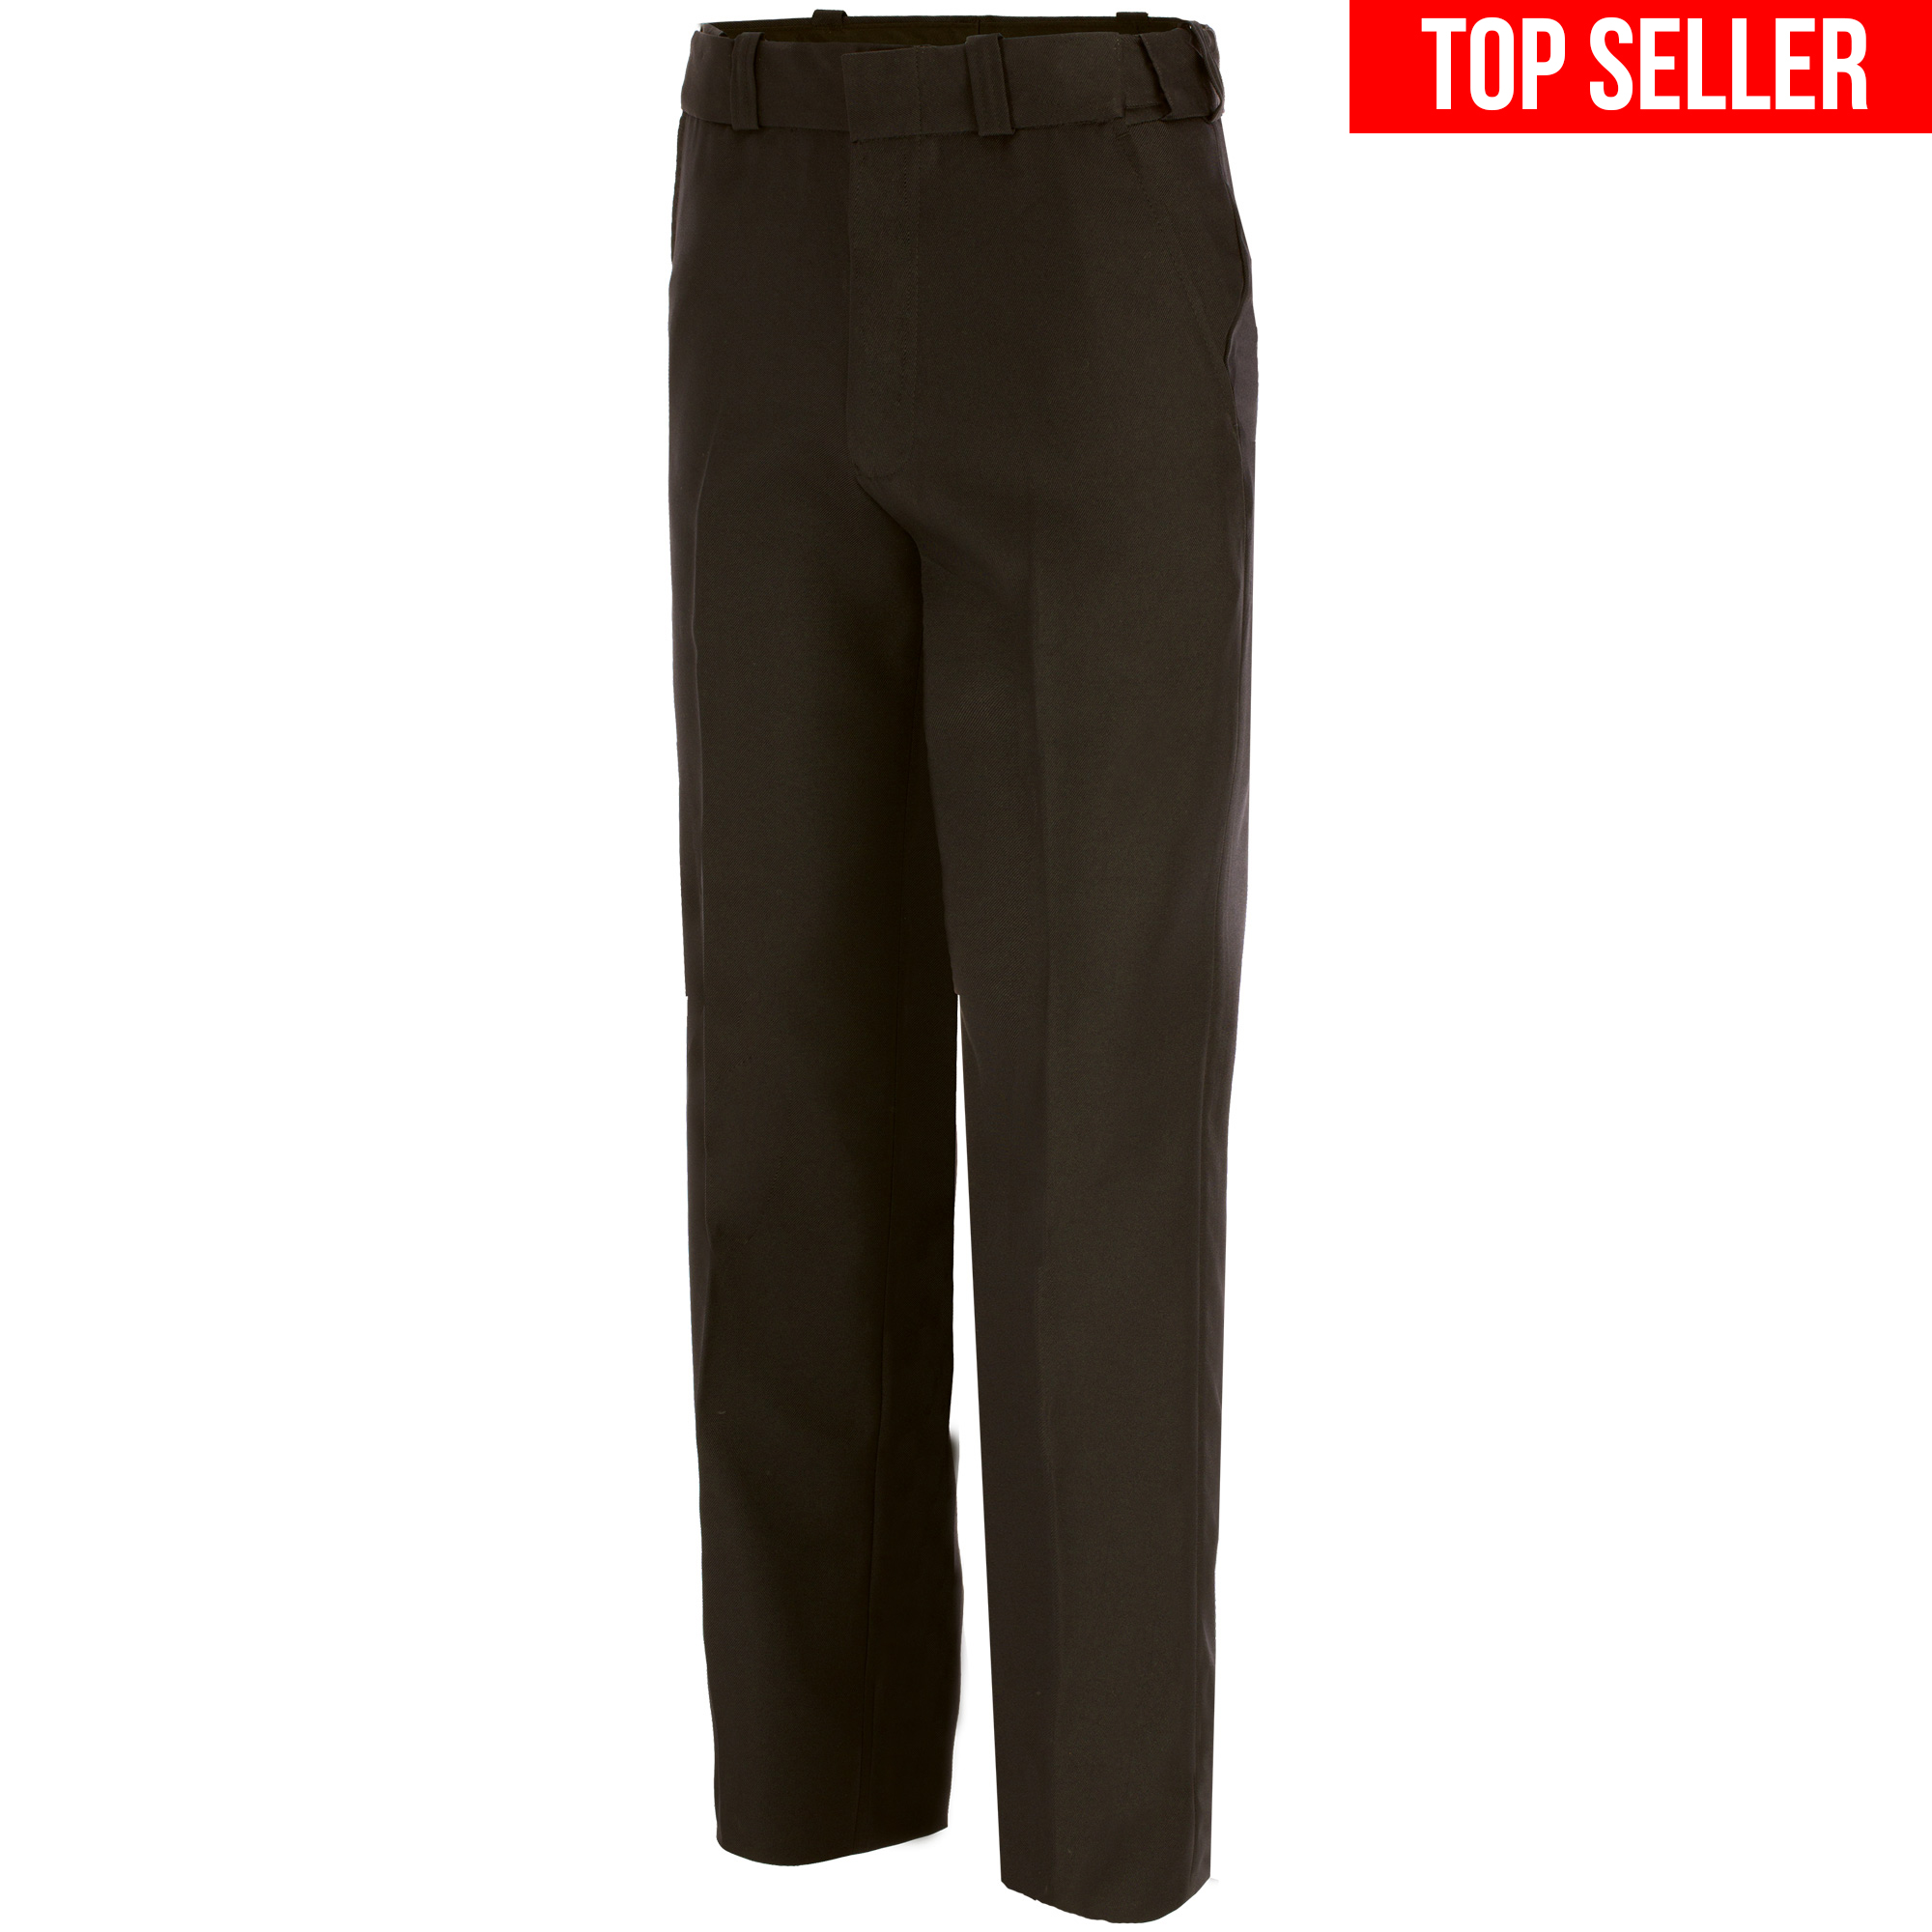 Tact Squad 7002 Polyester 4-Pocket Uniform Trousers-Tactsquad